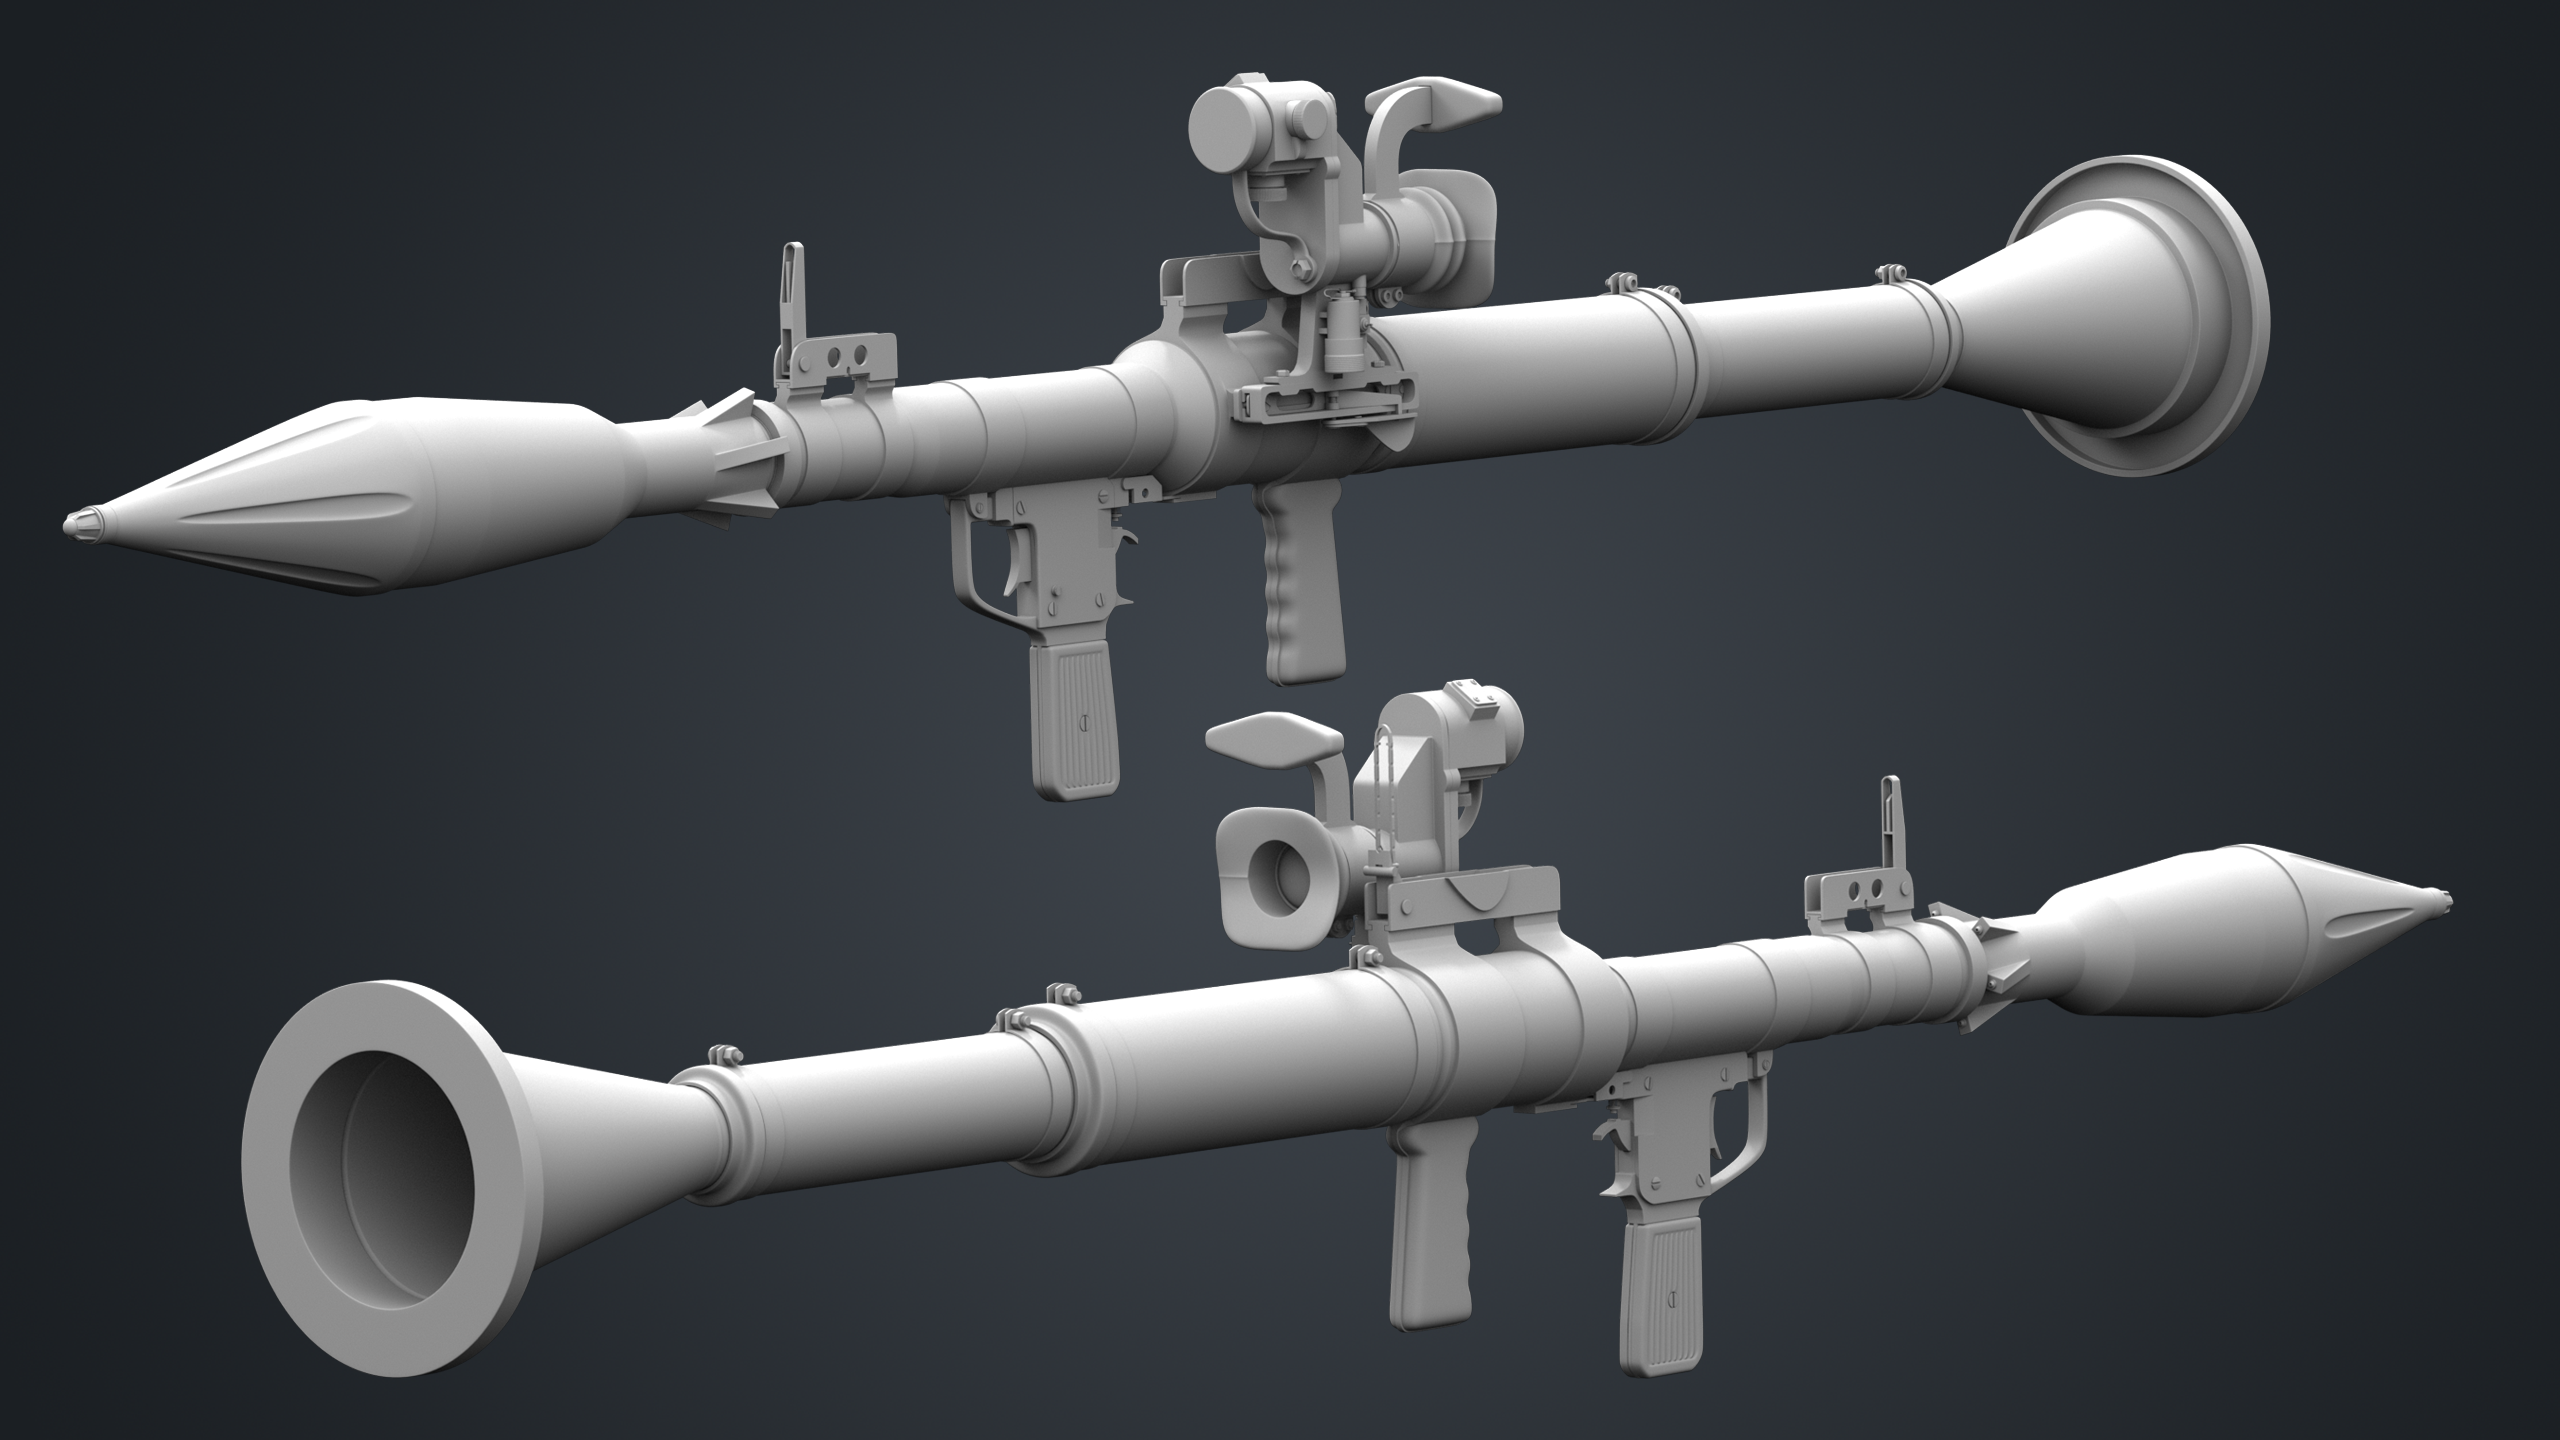 Pin On 3d Game Weapon Collection